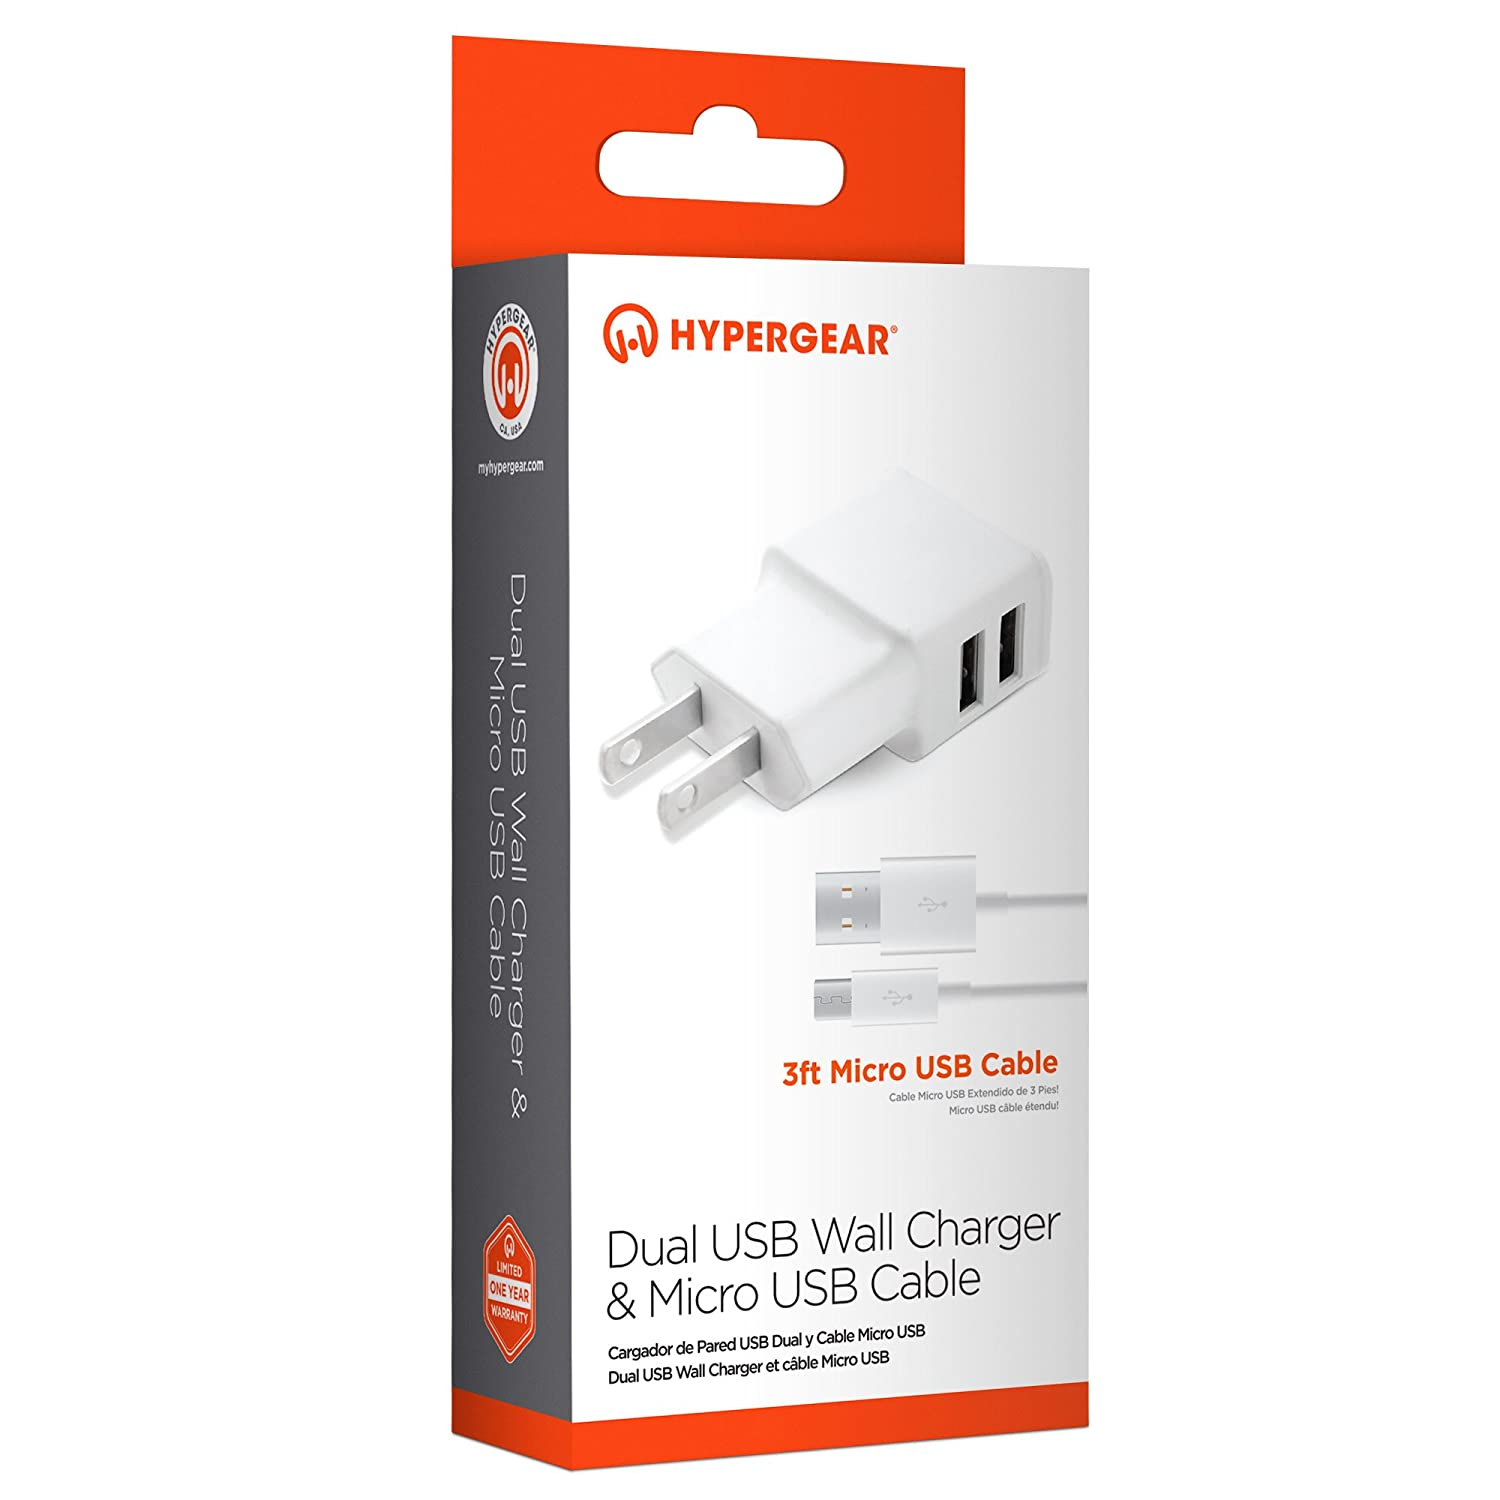 Amazon.com: HyperGear Portable USB Rapid Charging 2 Port ...